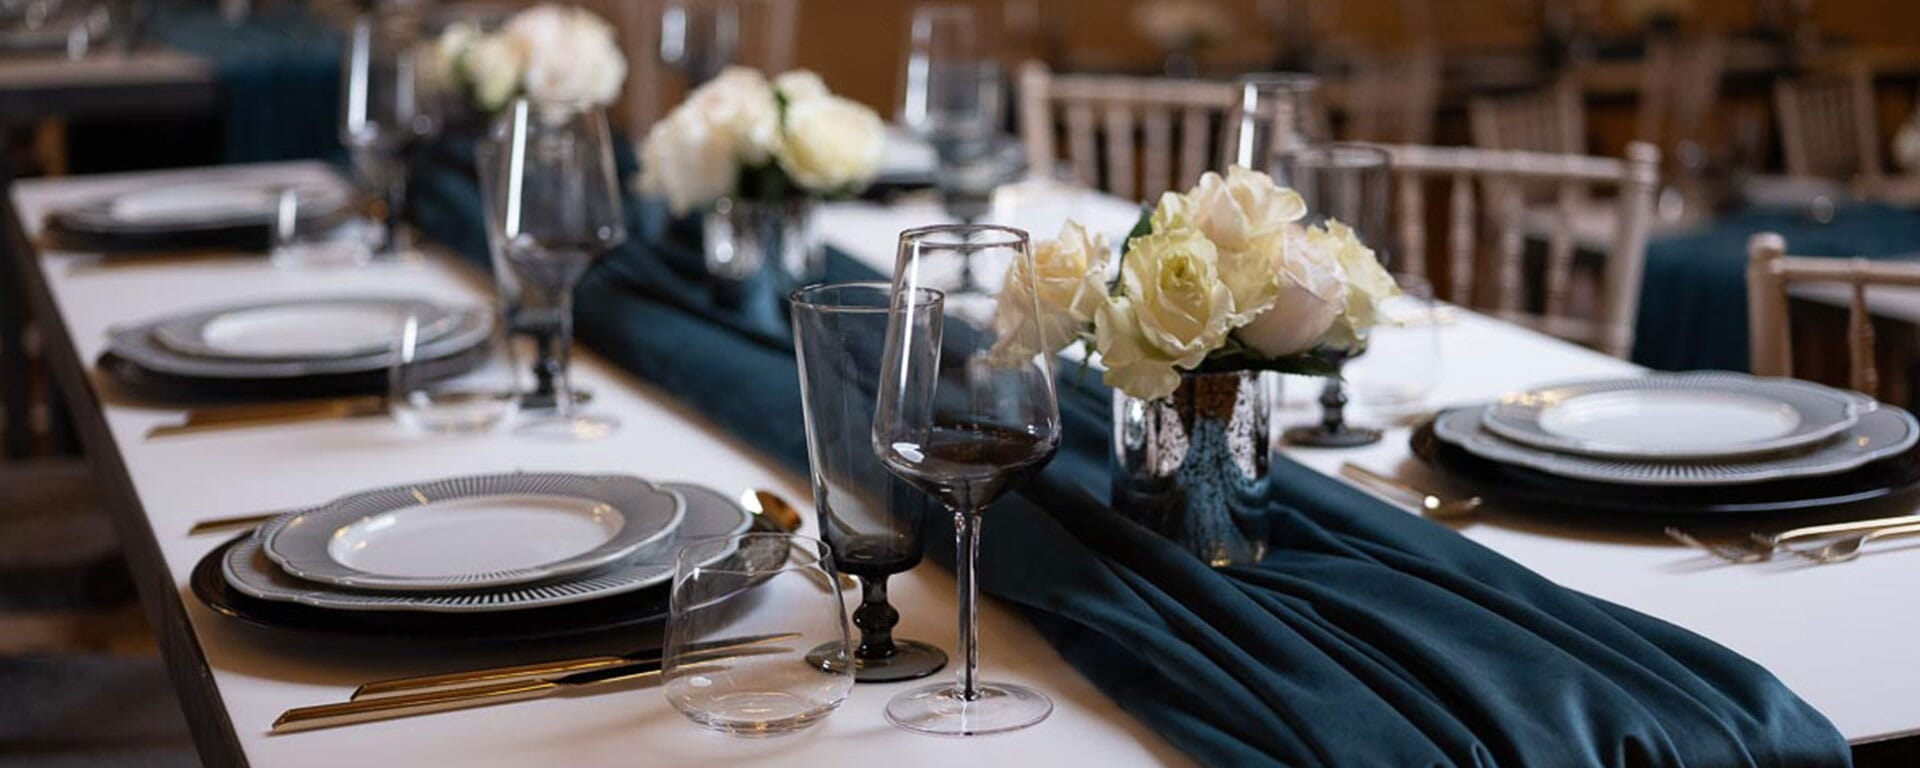 Plan your weddings with Hotel Du Pont, Wilmington